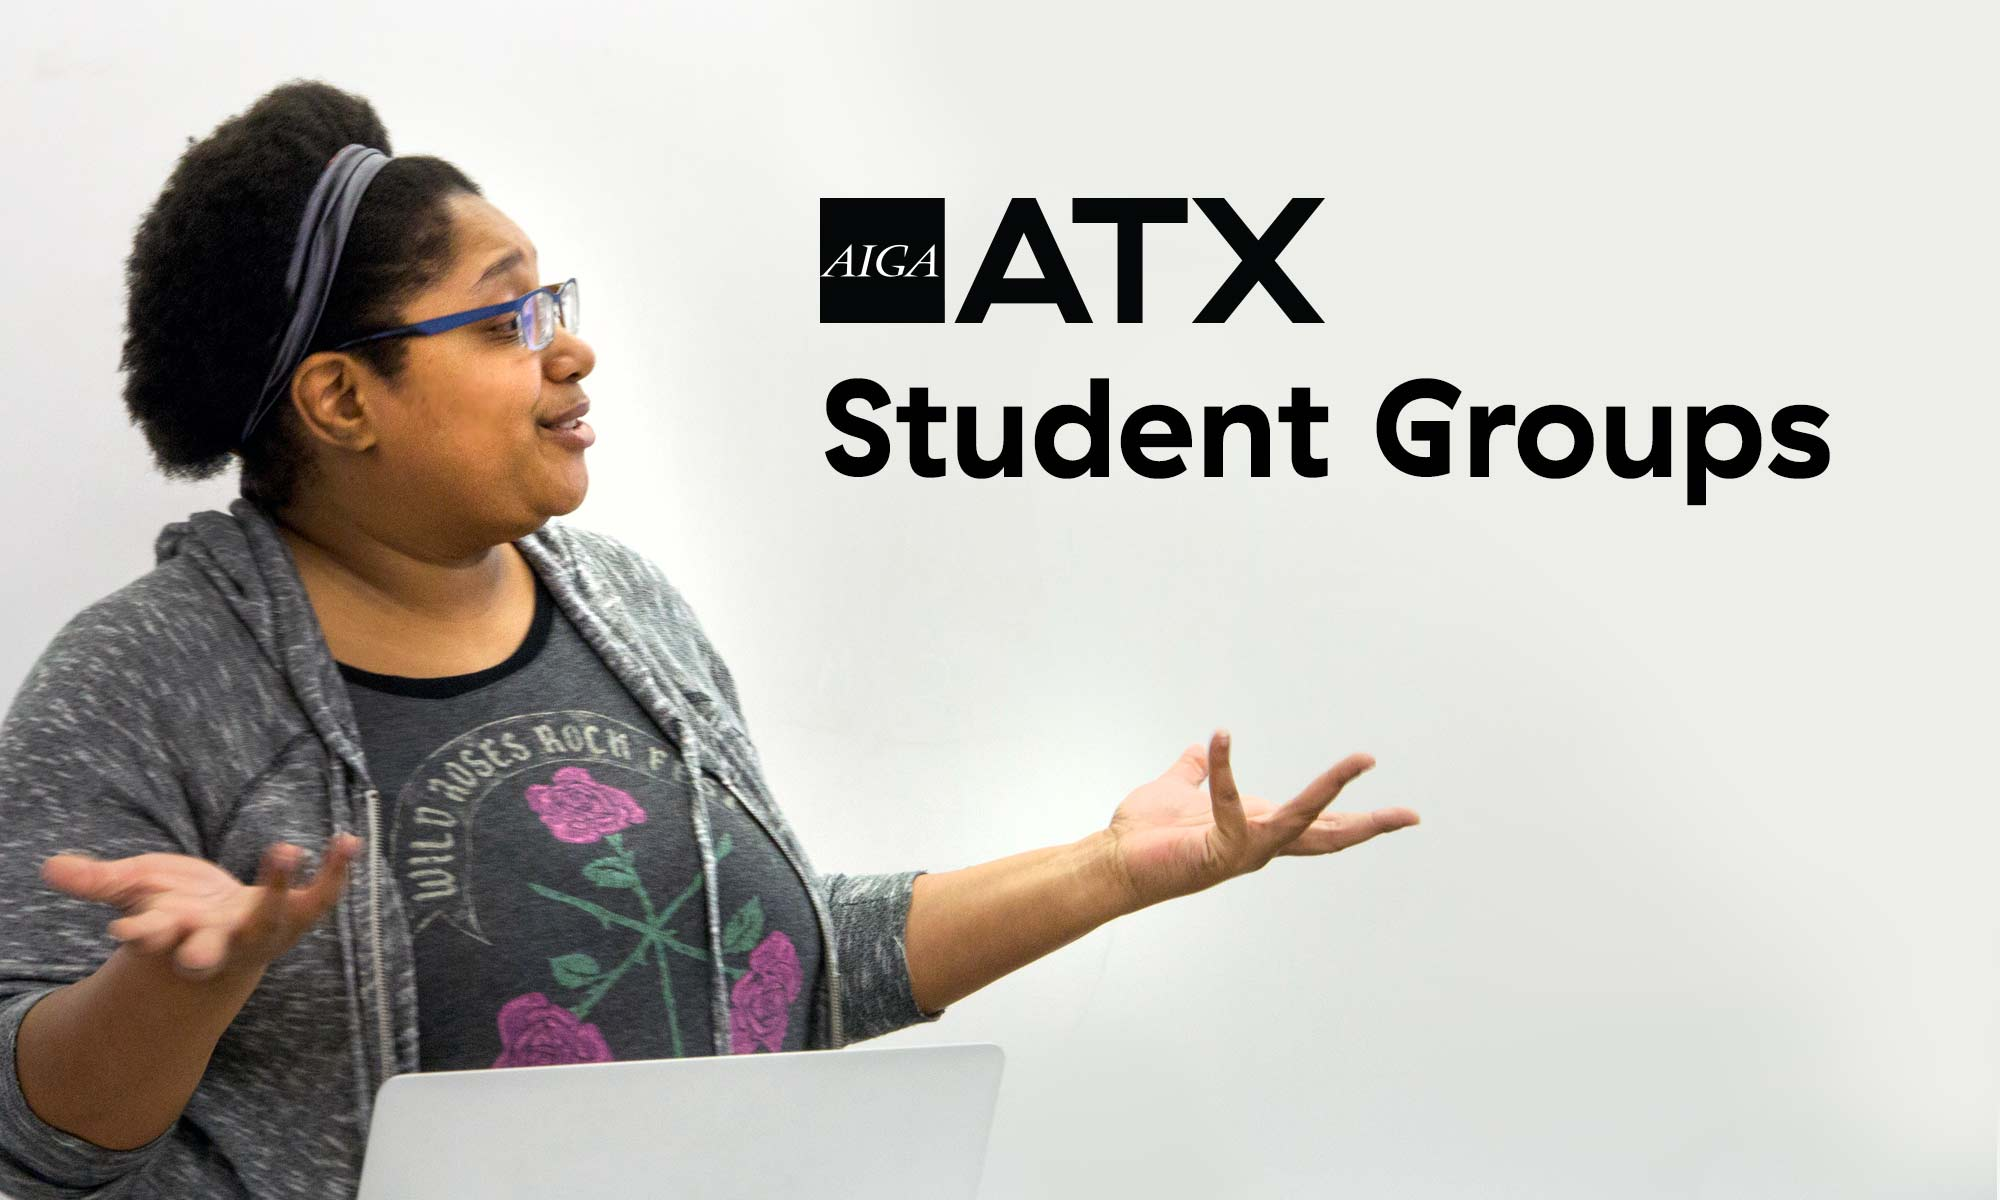 AIGA Austin Student Groups